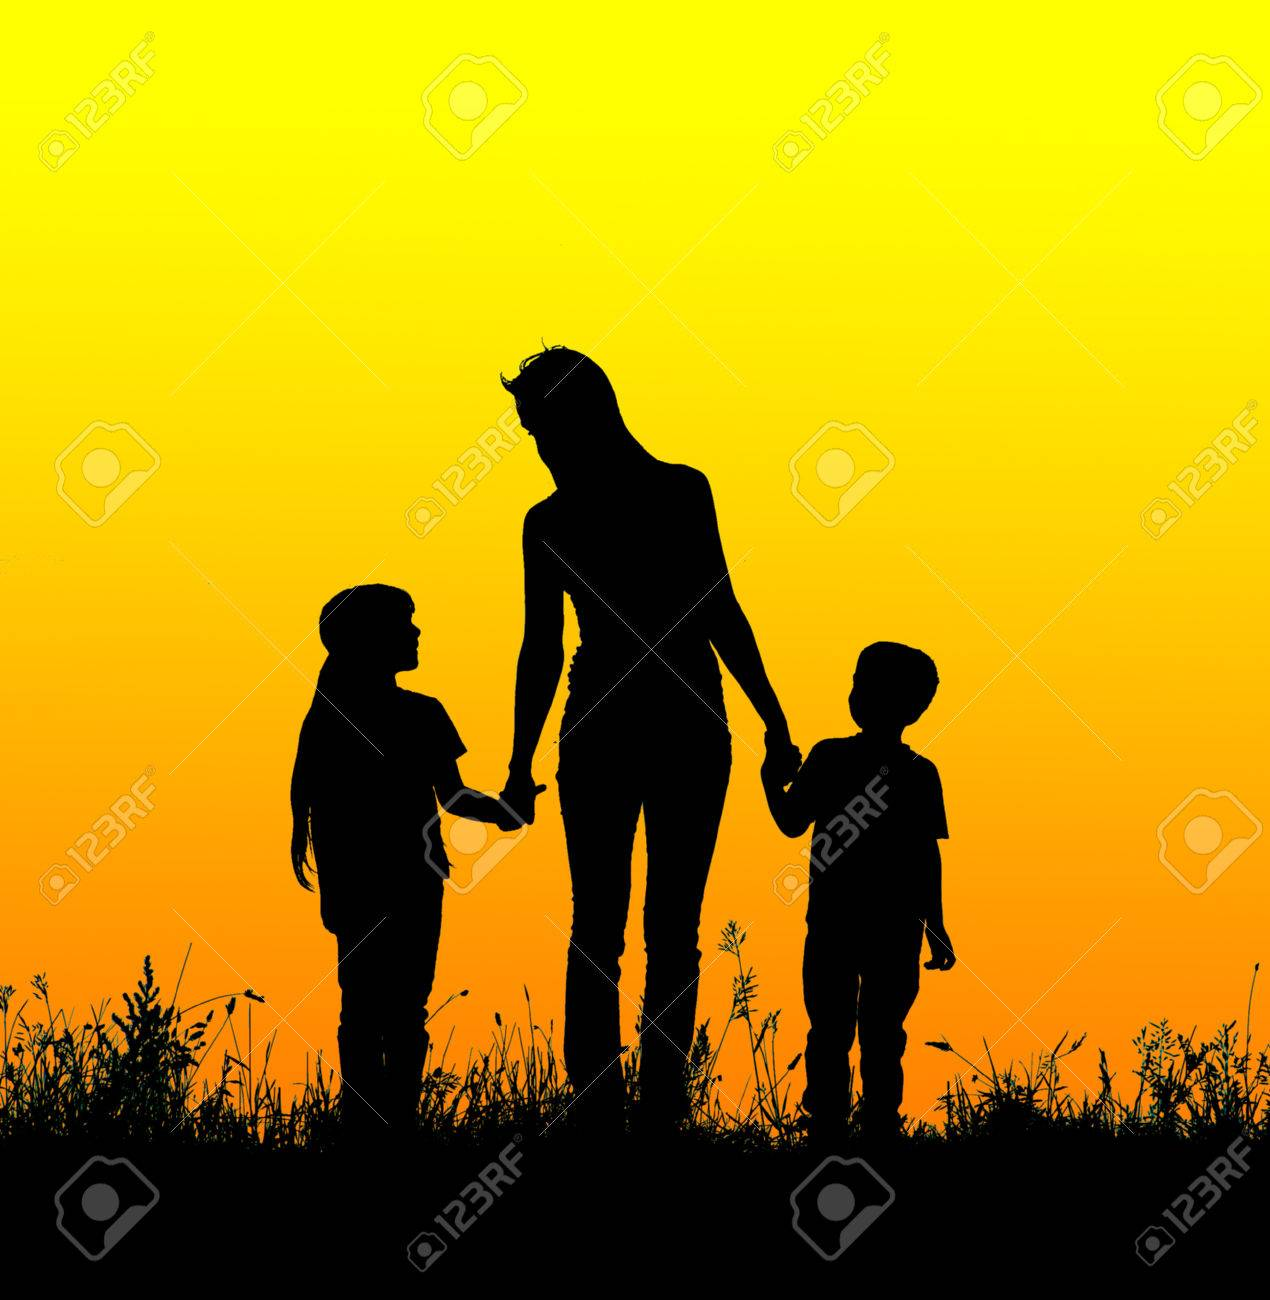 Silhouette Mother And Child Holding Hands At Sunset Stock Photo